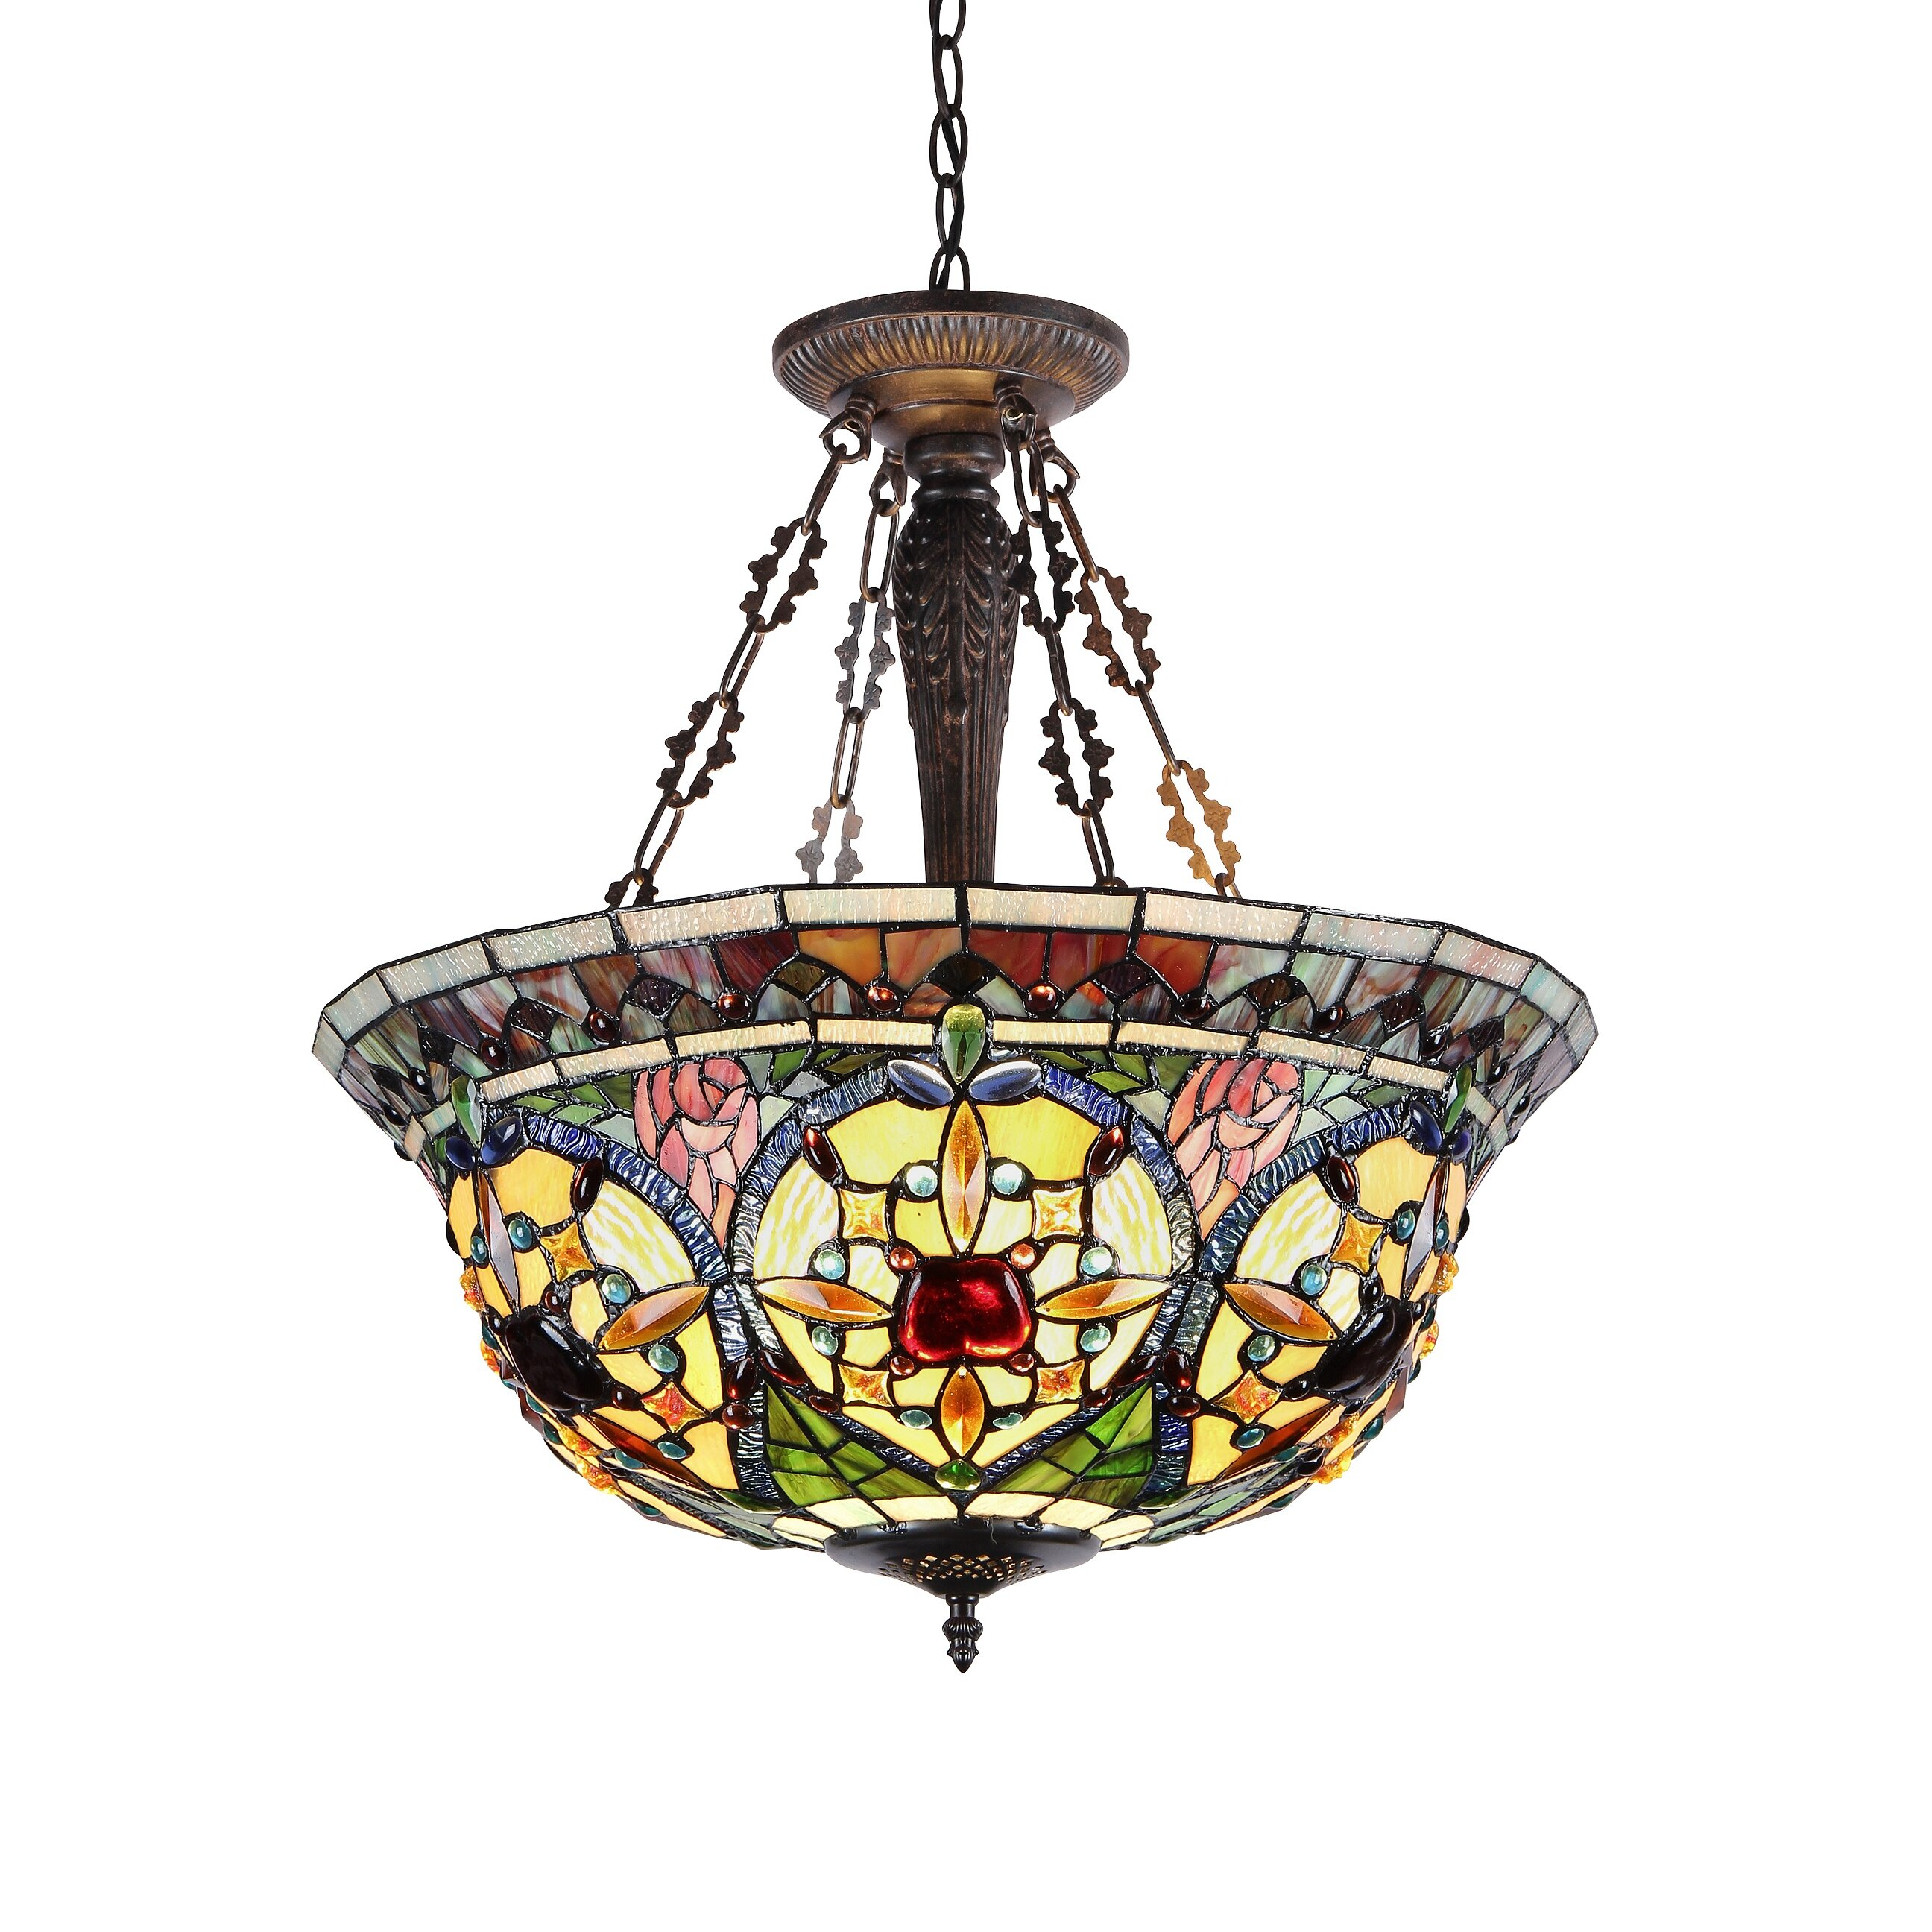 Chloe Lighting Victorian 3 Light Harlan Inverted Ceiling